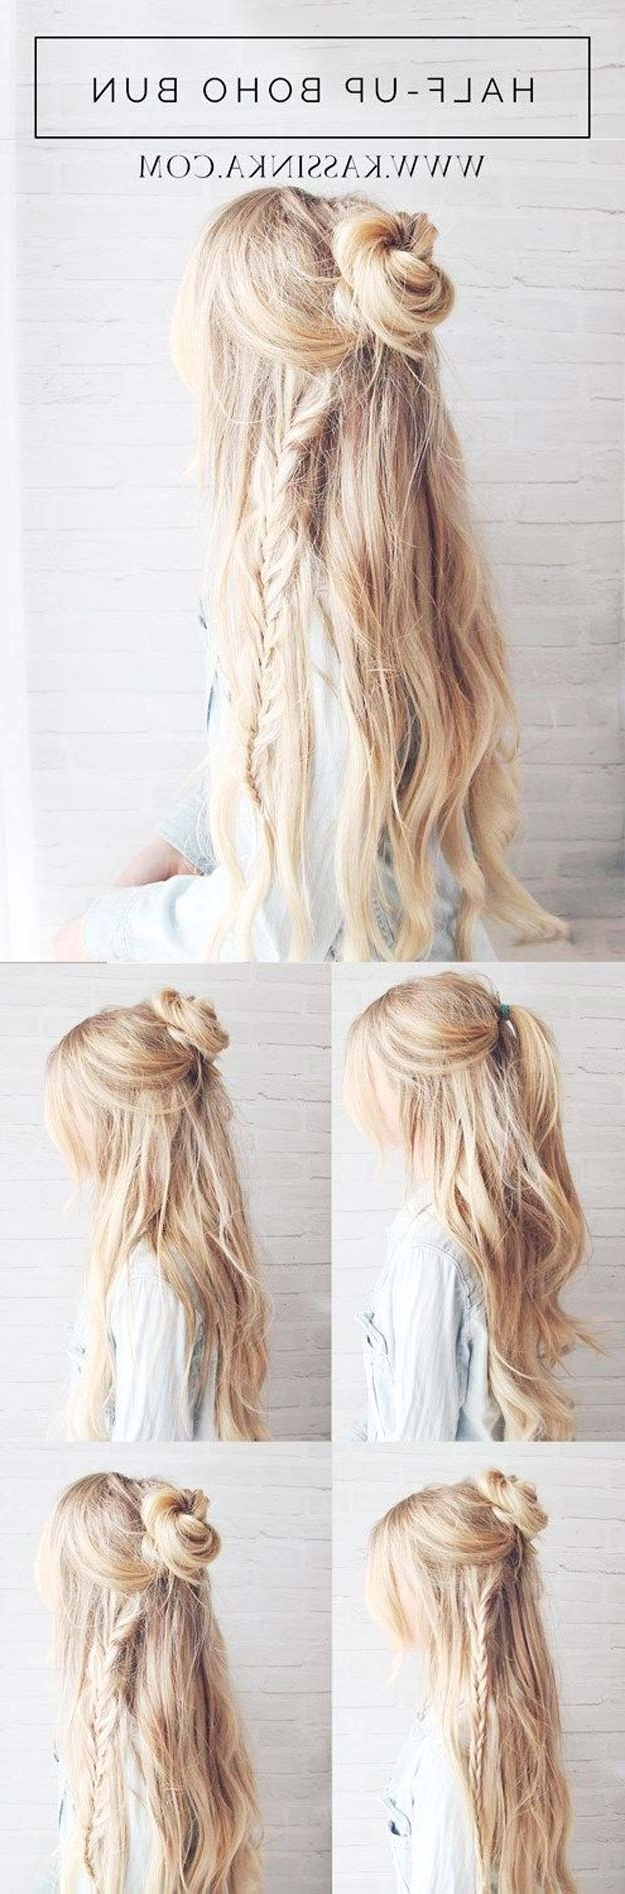 36 Best Hairstyles For Long Hair Intended For Teenage Updos For Long Hair (View 4 of 15)